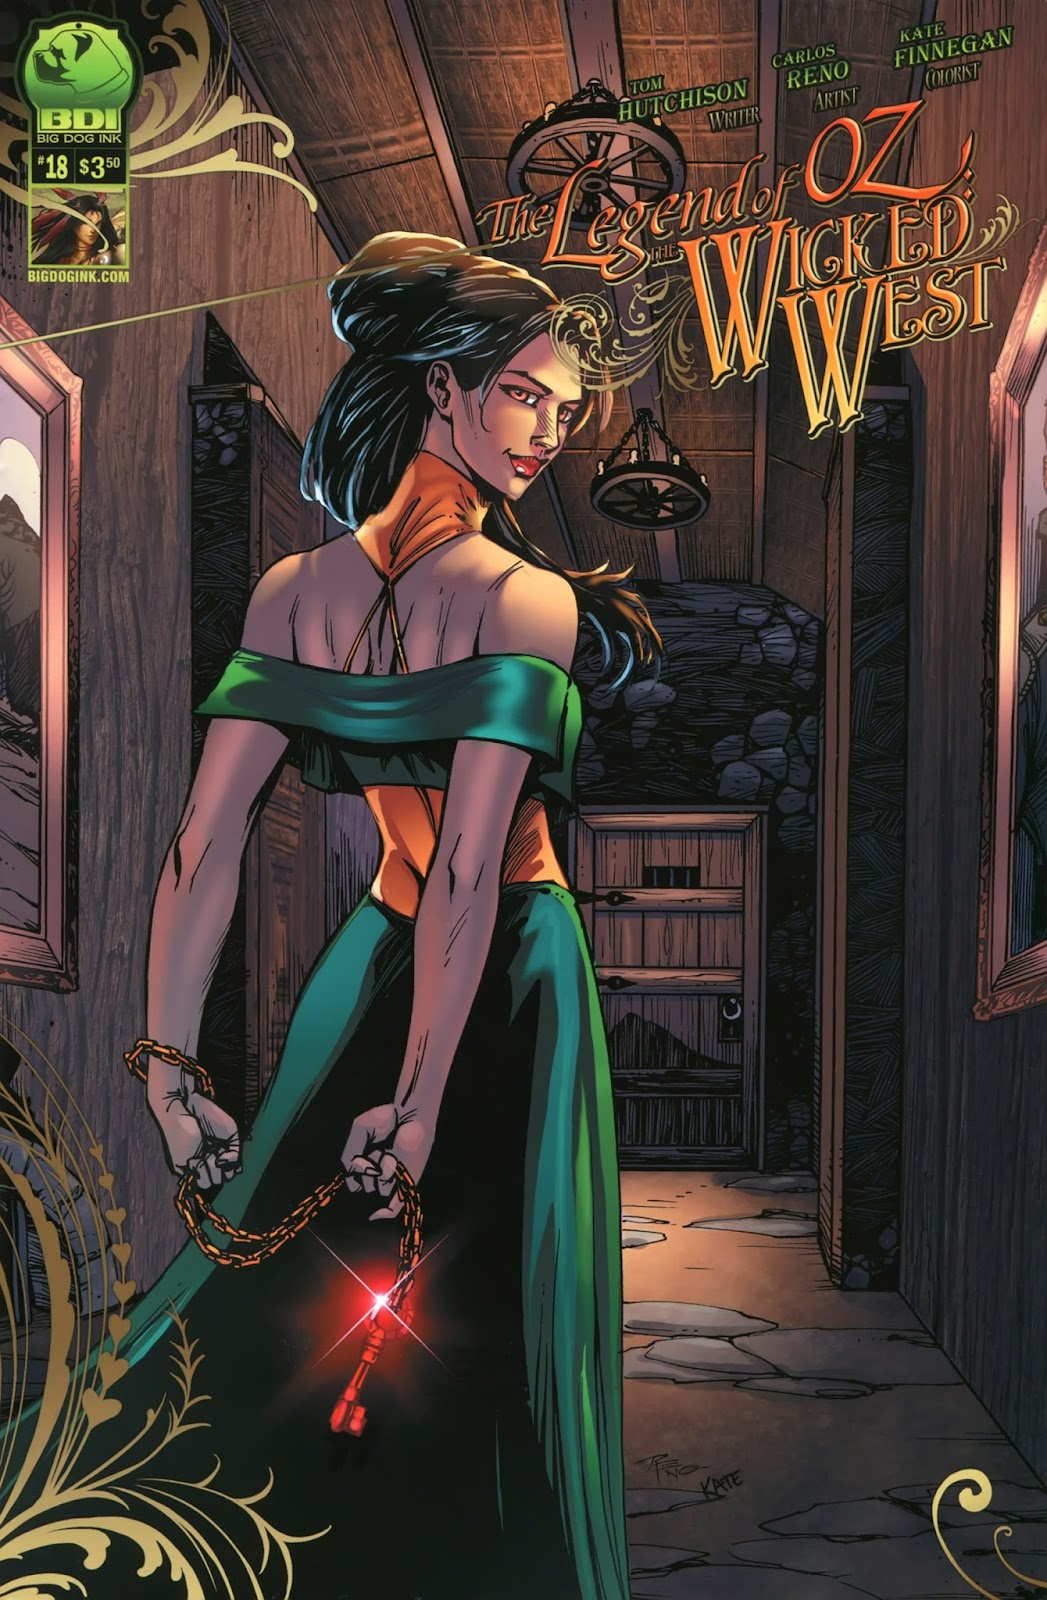 Legend of Oz: The Wicked West (2012) issue 18 - Page 1